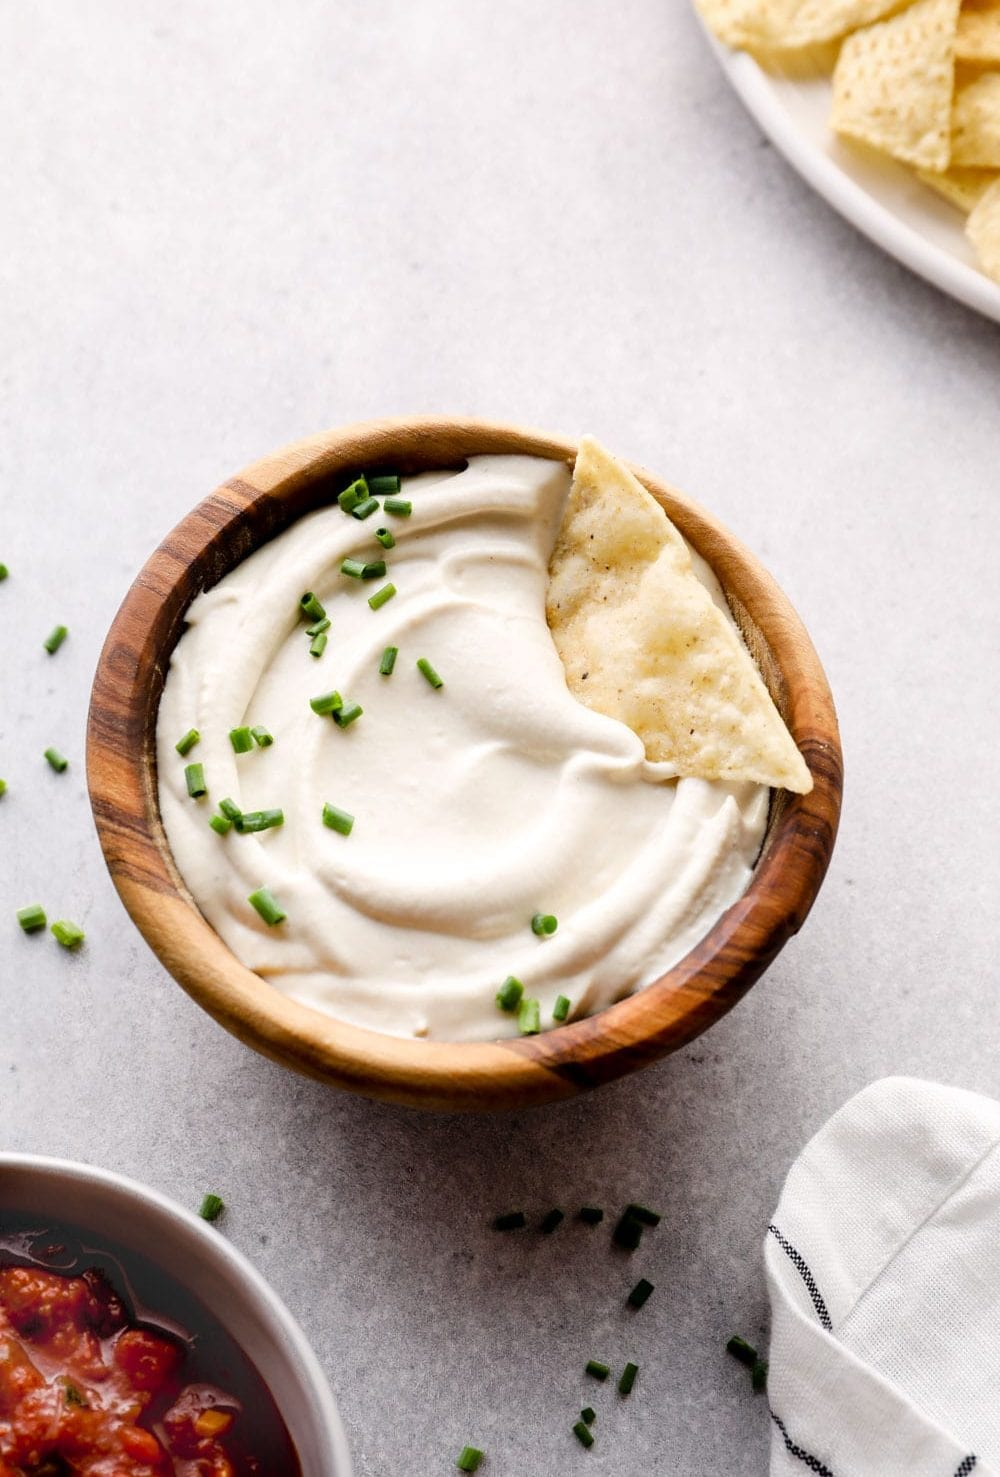 Cashew Sour Cream in a bowl garnished with chives.